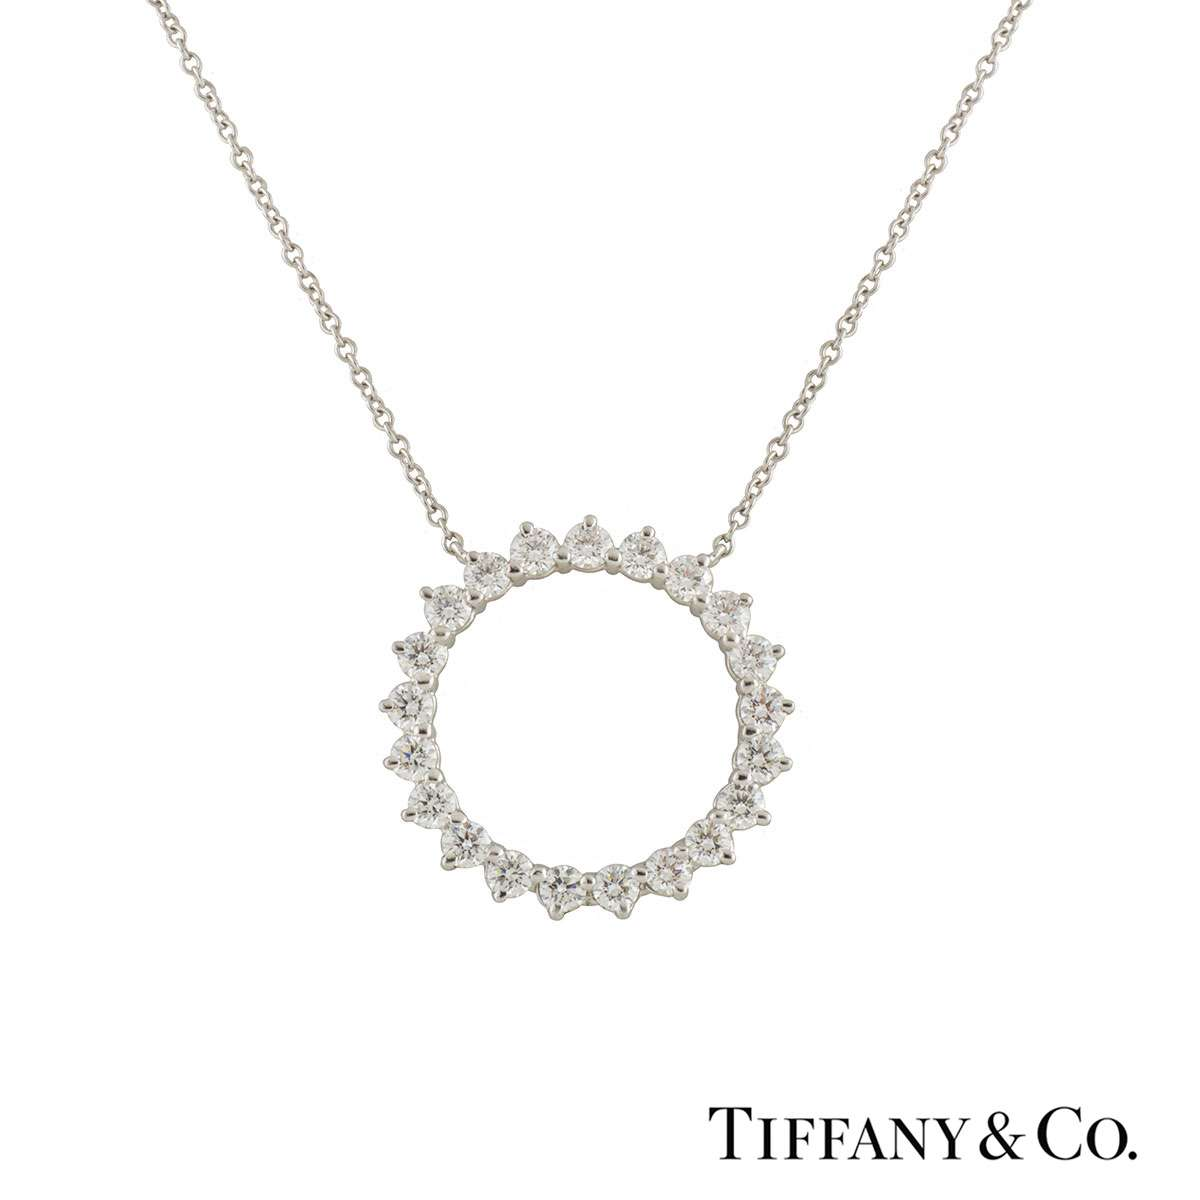 Tiffany & Co. Diamond Open Circle Pendant